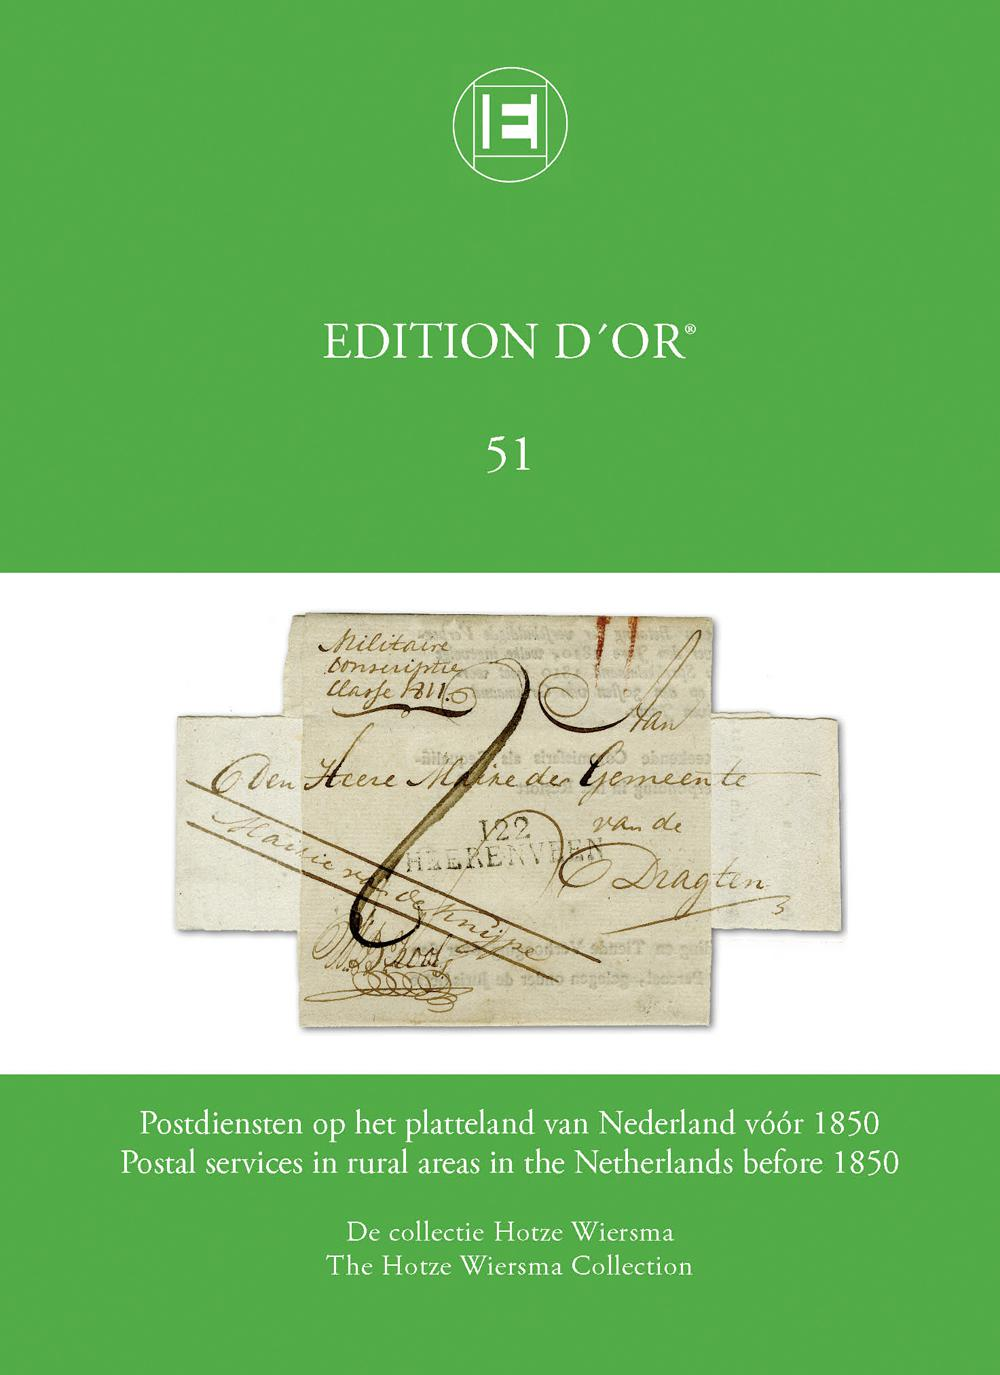 EDITION D'OR vol. 51: Postal services in rural areas in the Netherlands before 1850 • The Hotze Wiersma Collection